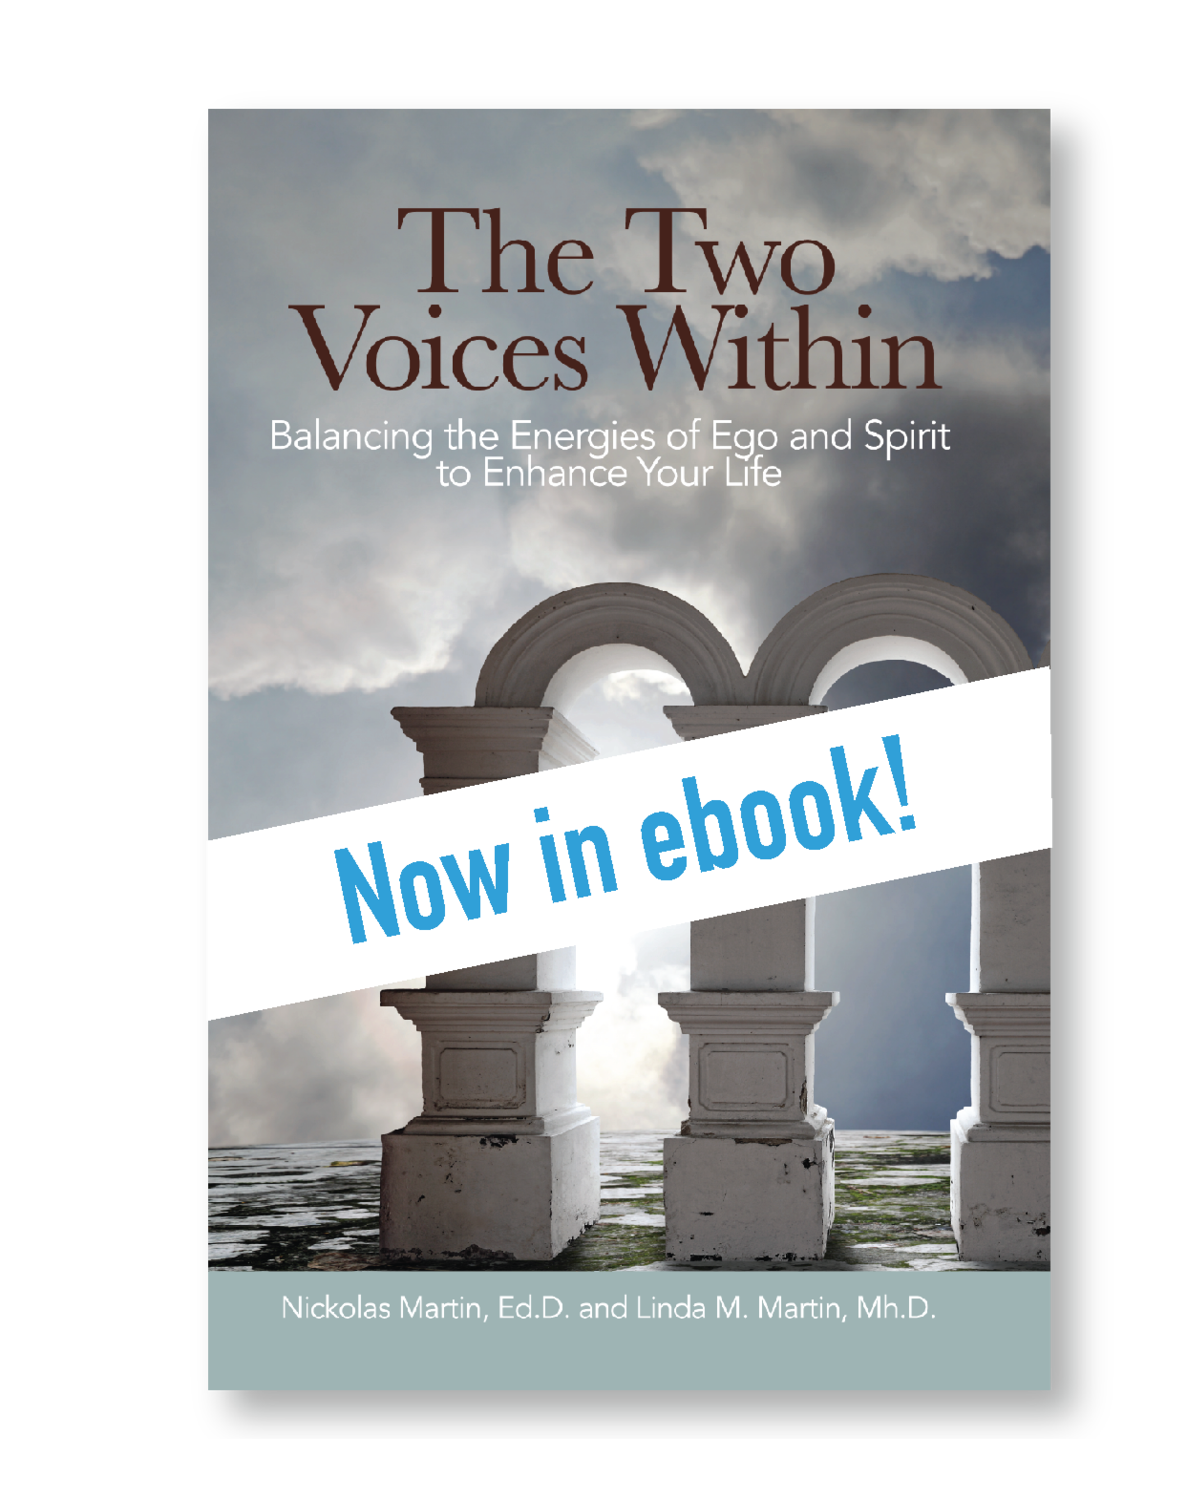 The Two Voices Within: The Energies of Ego and Spirit